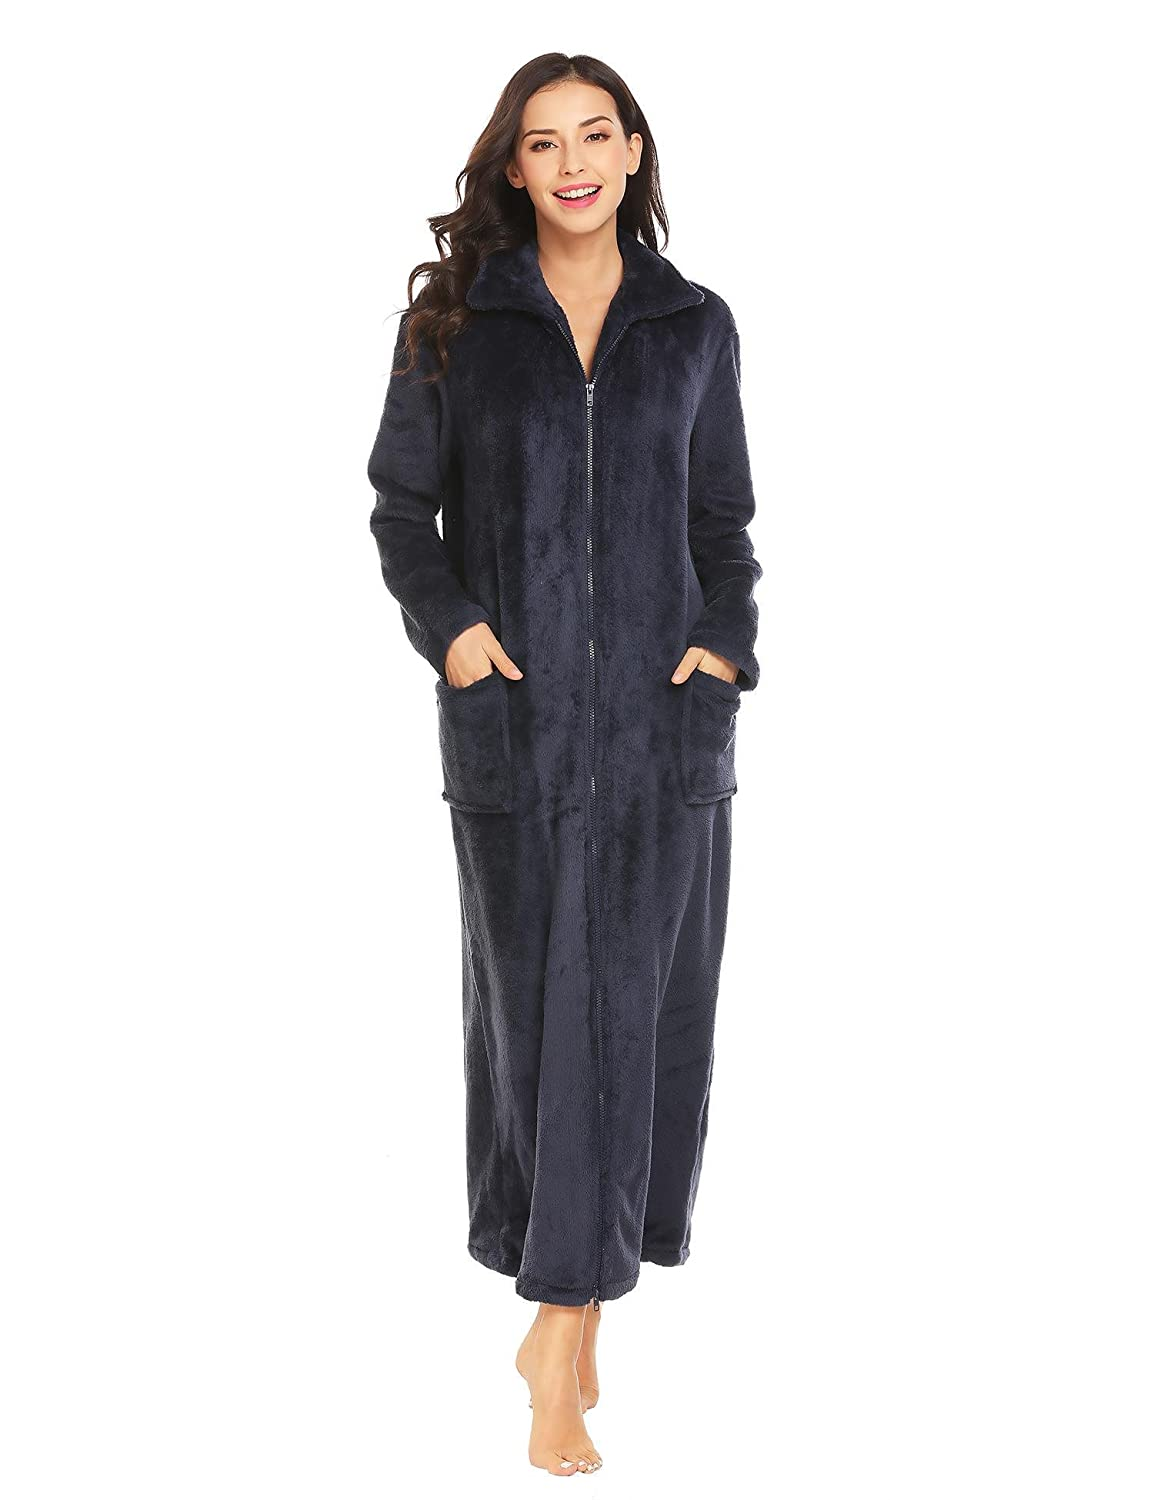 398207d8fb Ekouaer Women s Flannel Robe Zipper Front Robes Full Length Bathrobe(S-XXL)  at Amazon Women s Clothing store